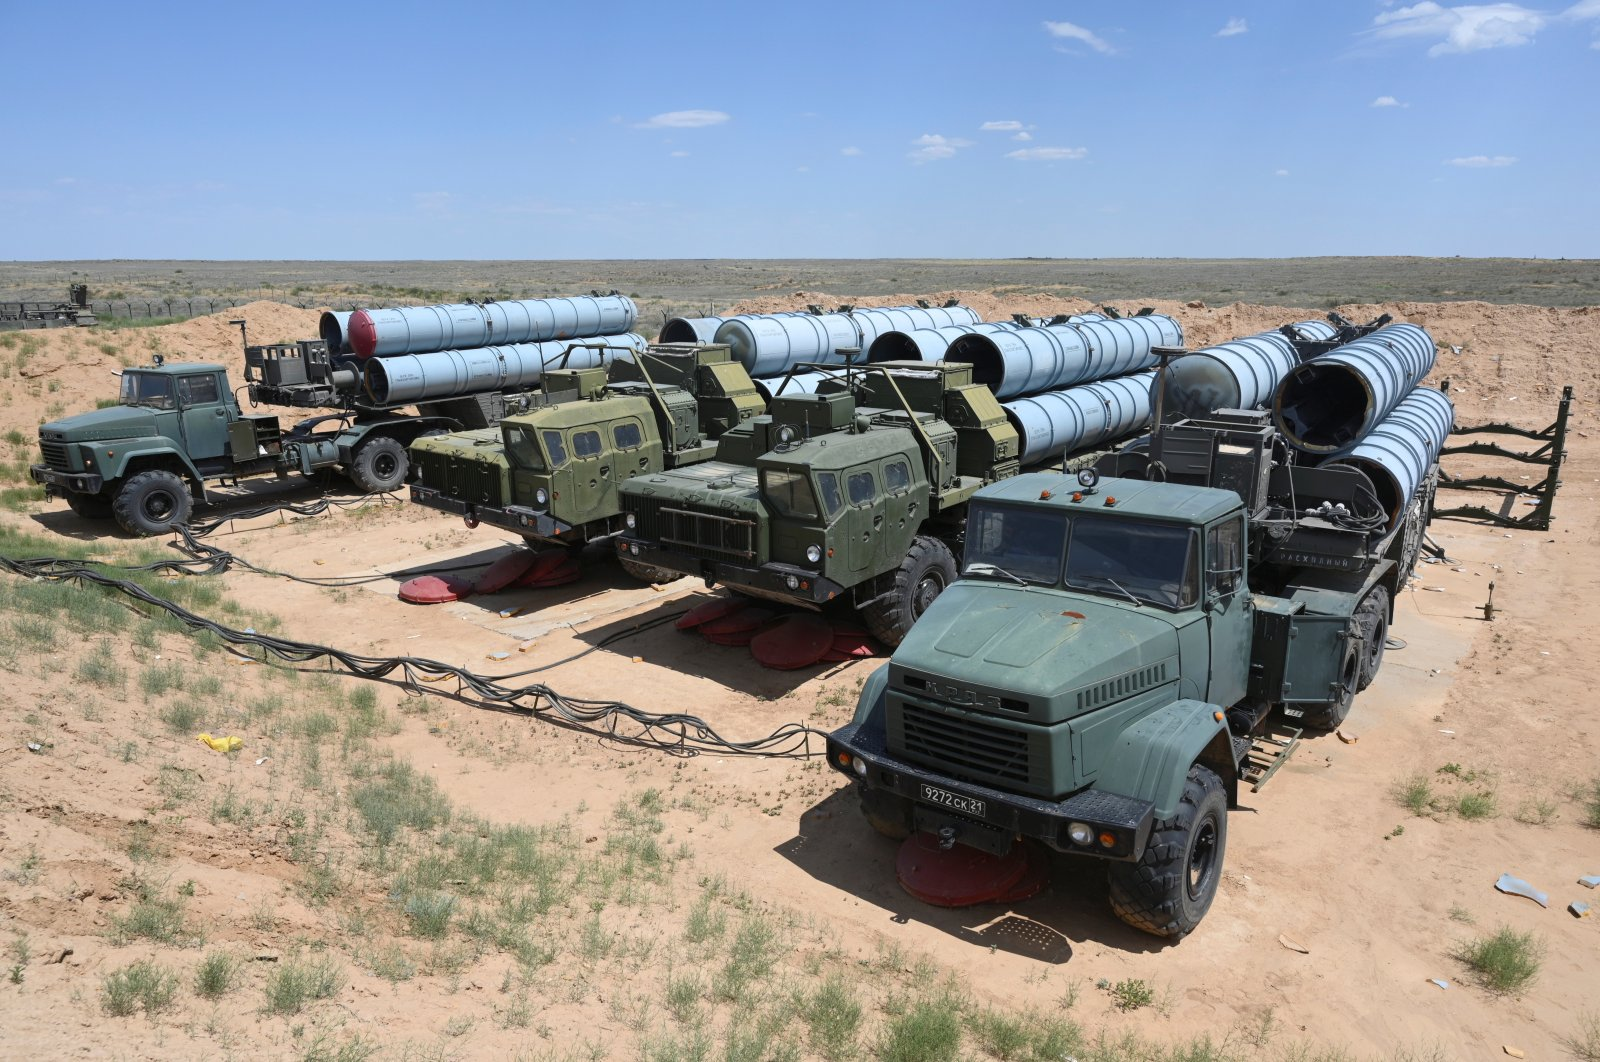 A view shows Russian S-300 missile systems during military exercises at the Ashuluk shooting range near Astrakhan, Russia June 19, 2019. (Reuters Photo)